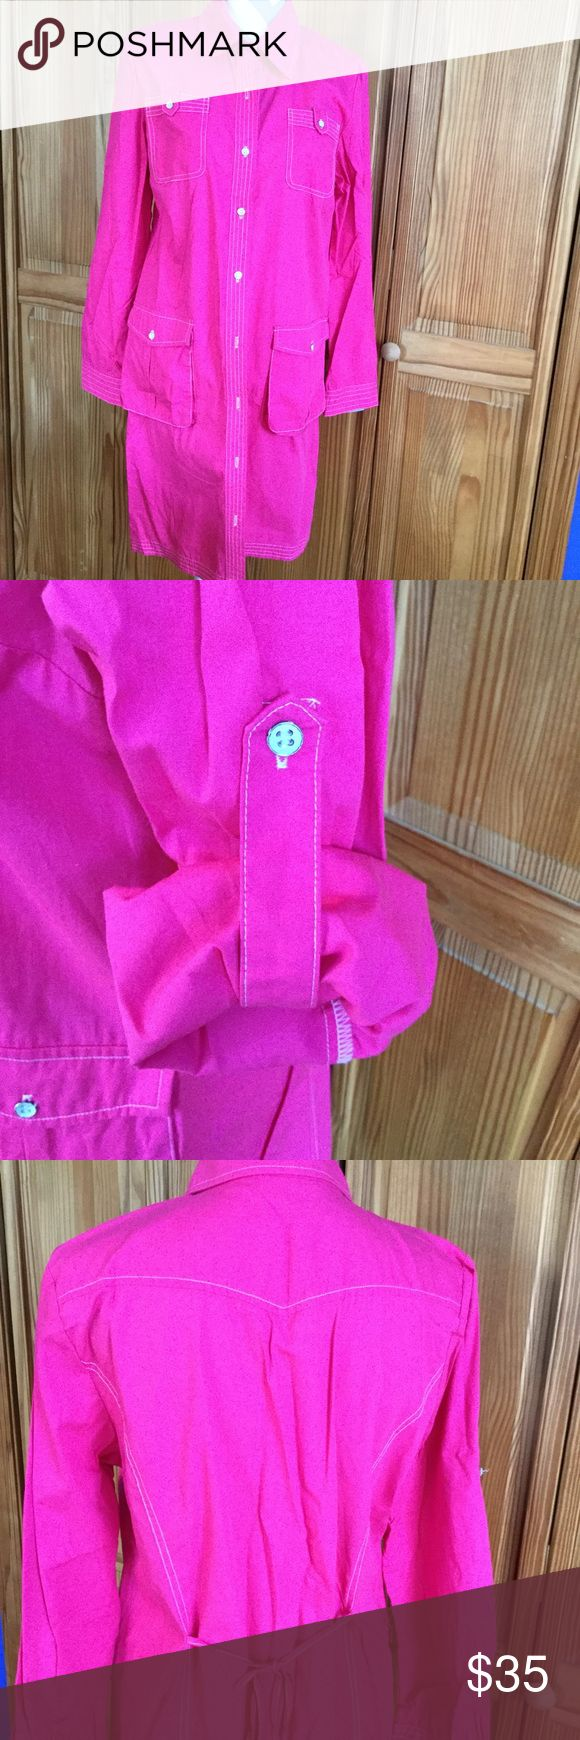 Pink Shirt Dress Pink dress shirt, rolled sleeves, contrast neck lining, ties in the back. 21 inches at the chest/armpit when buttoned and laid flat. 37 inches from shoulder to hem. Spanner Dresses